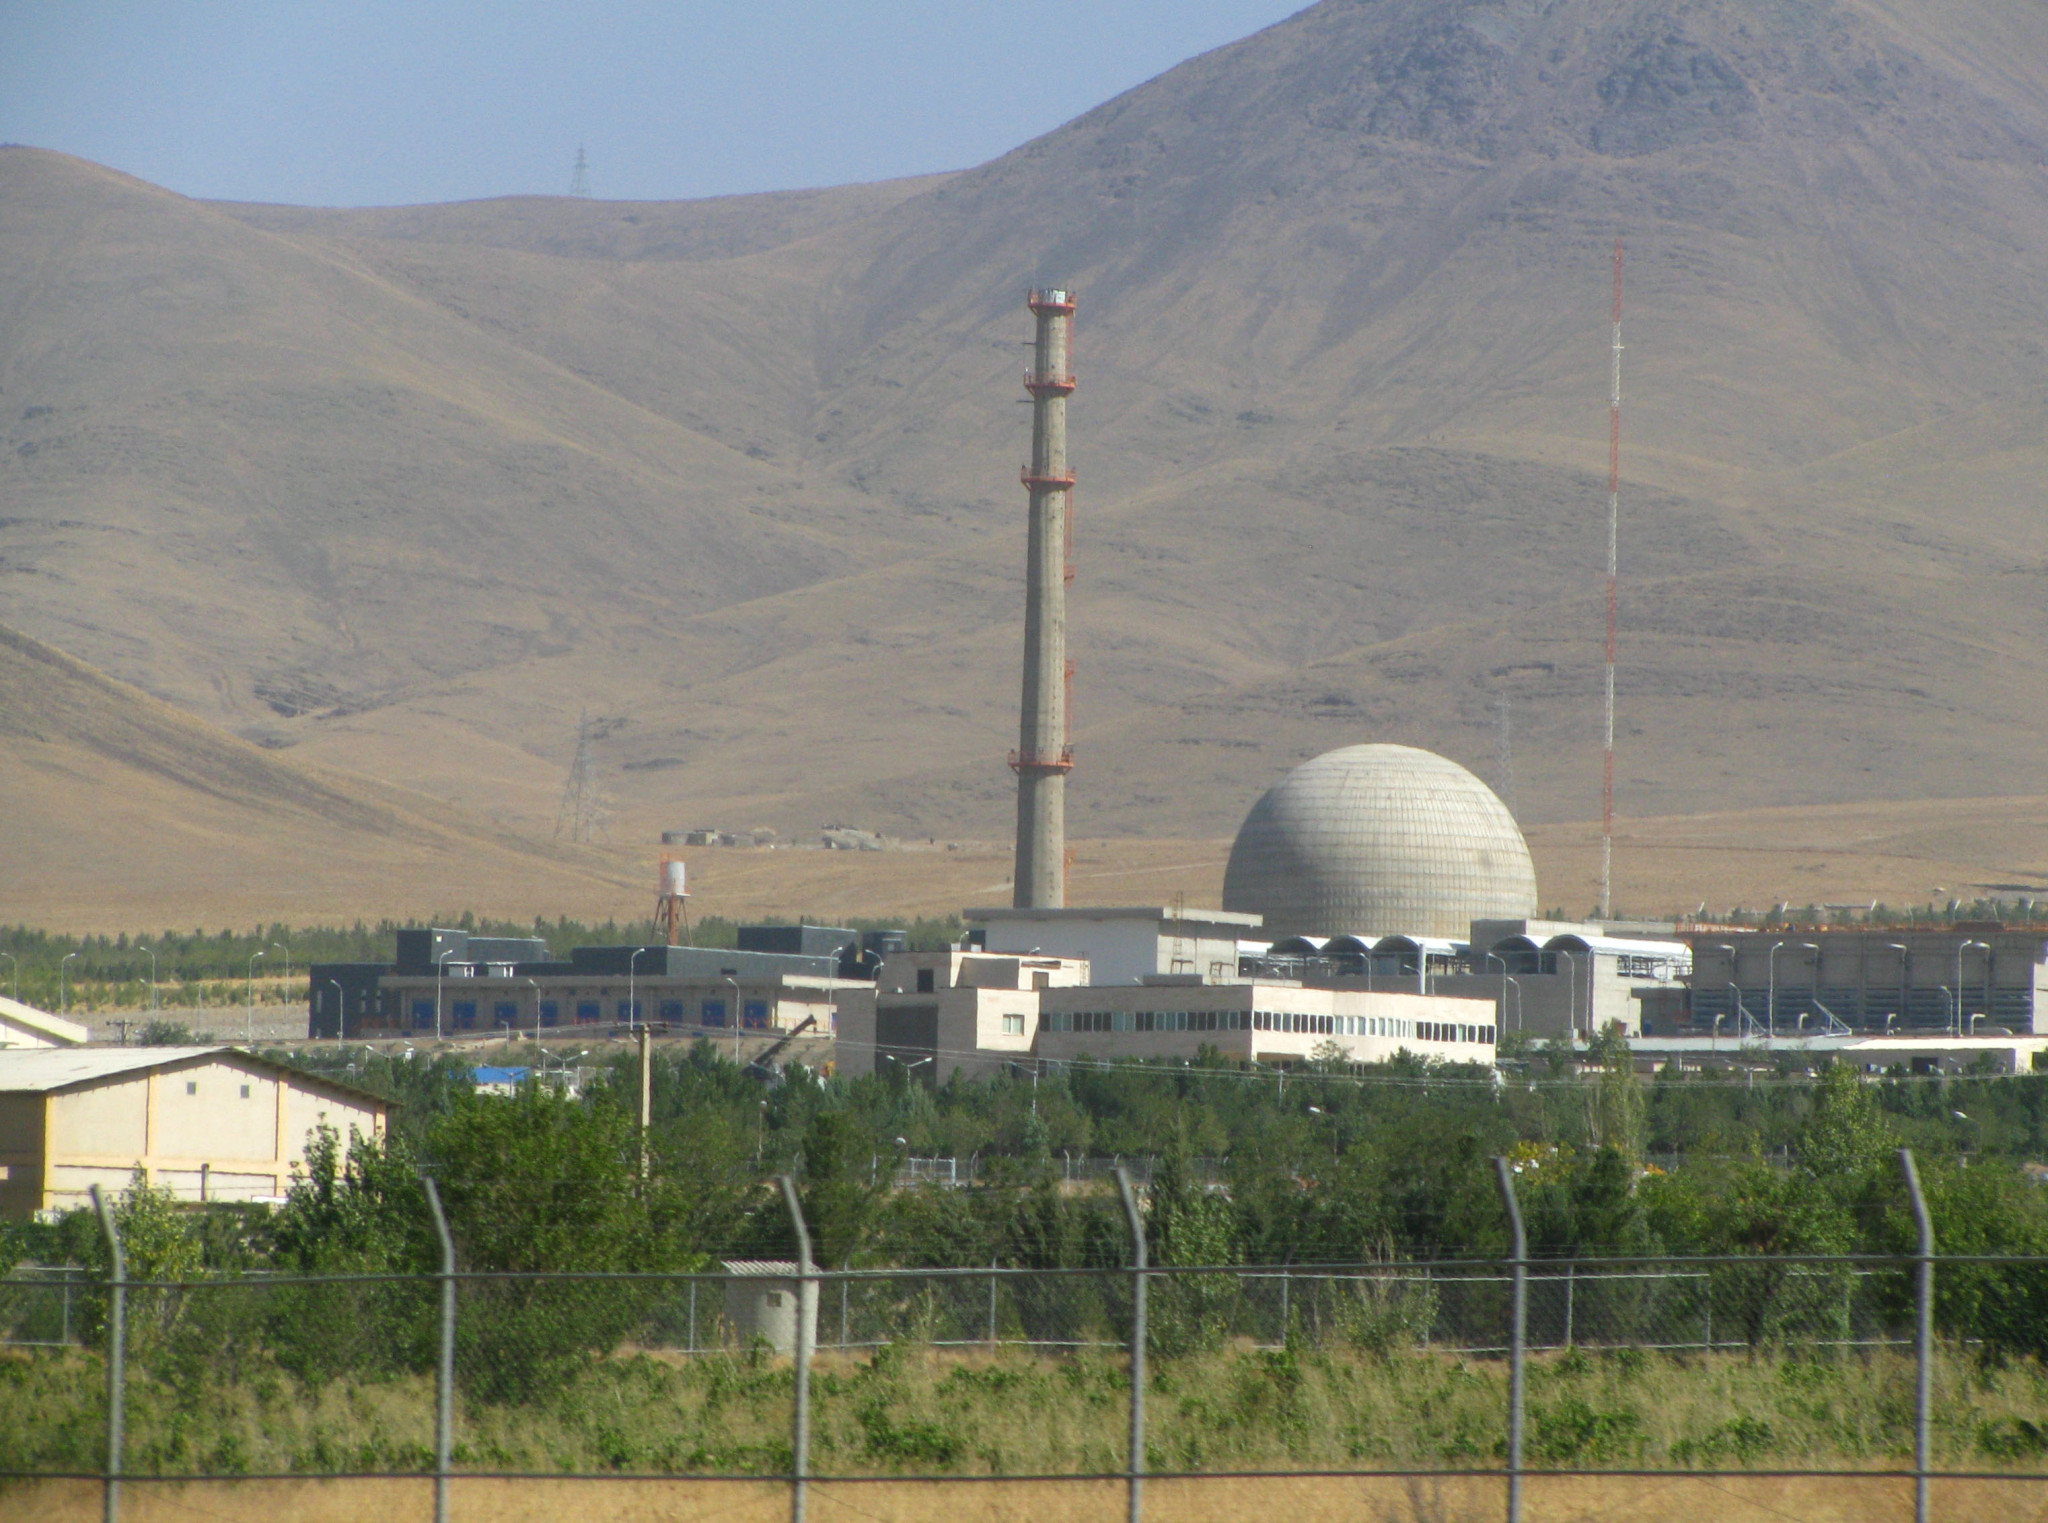 Iran nuclear deal could boost crude oil output